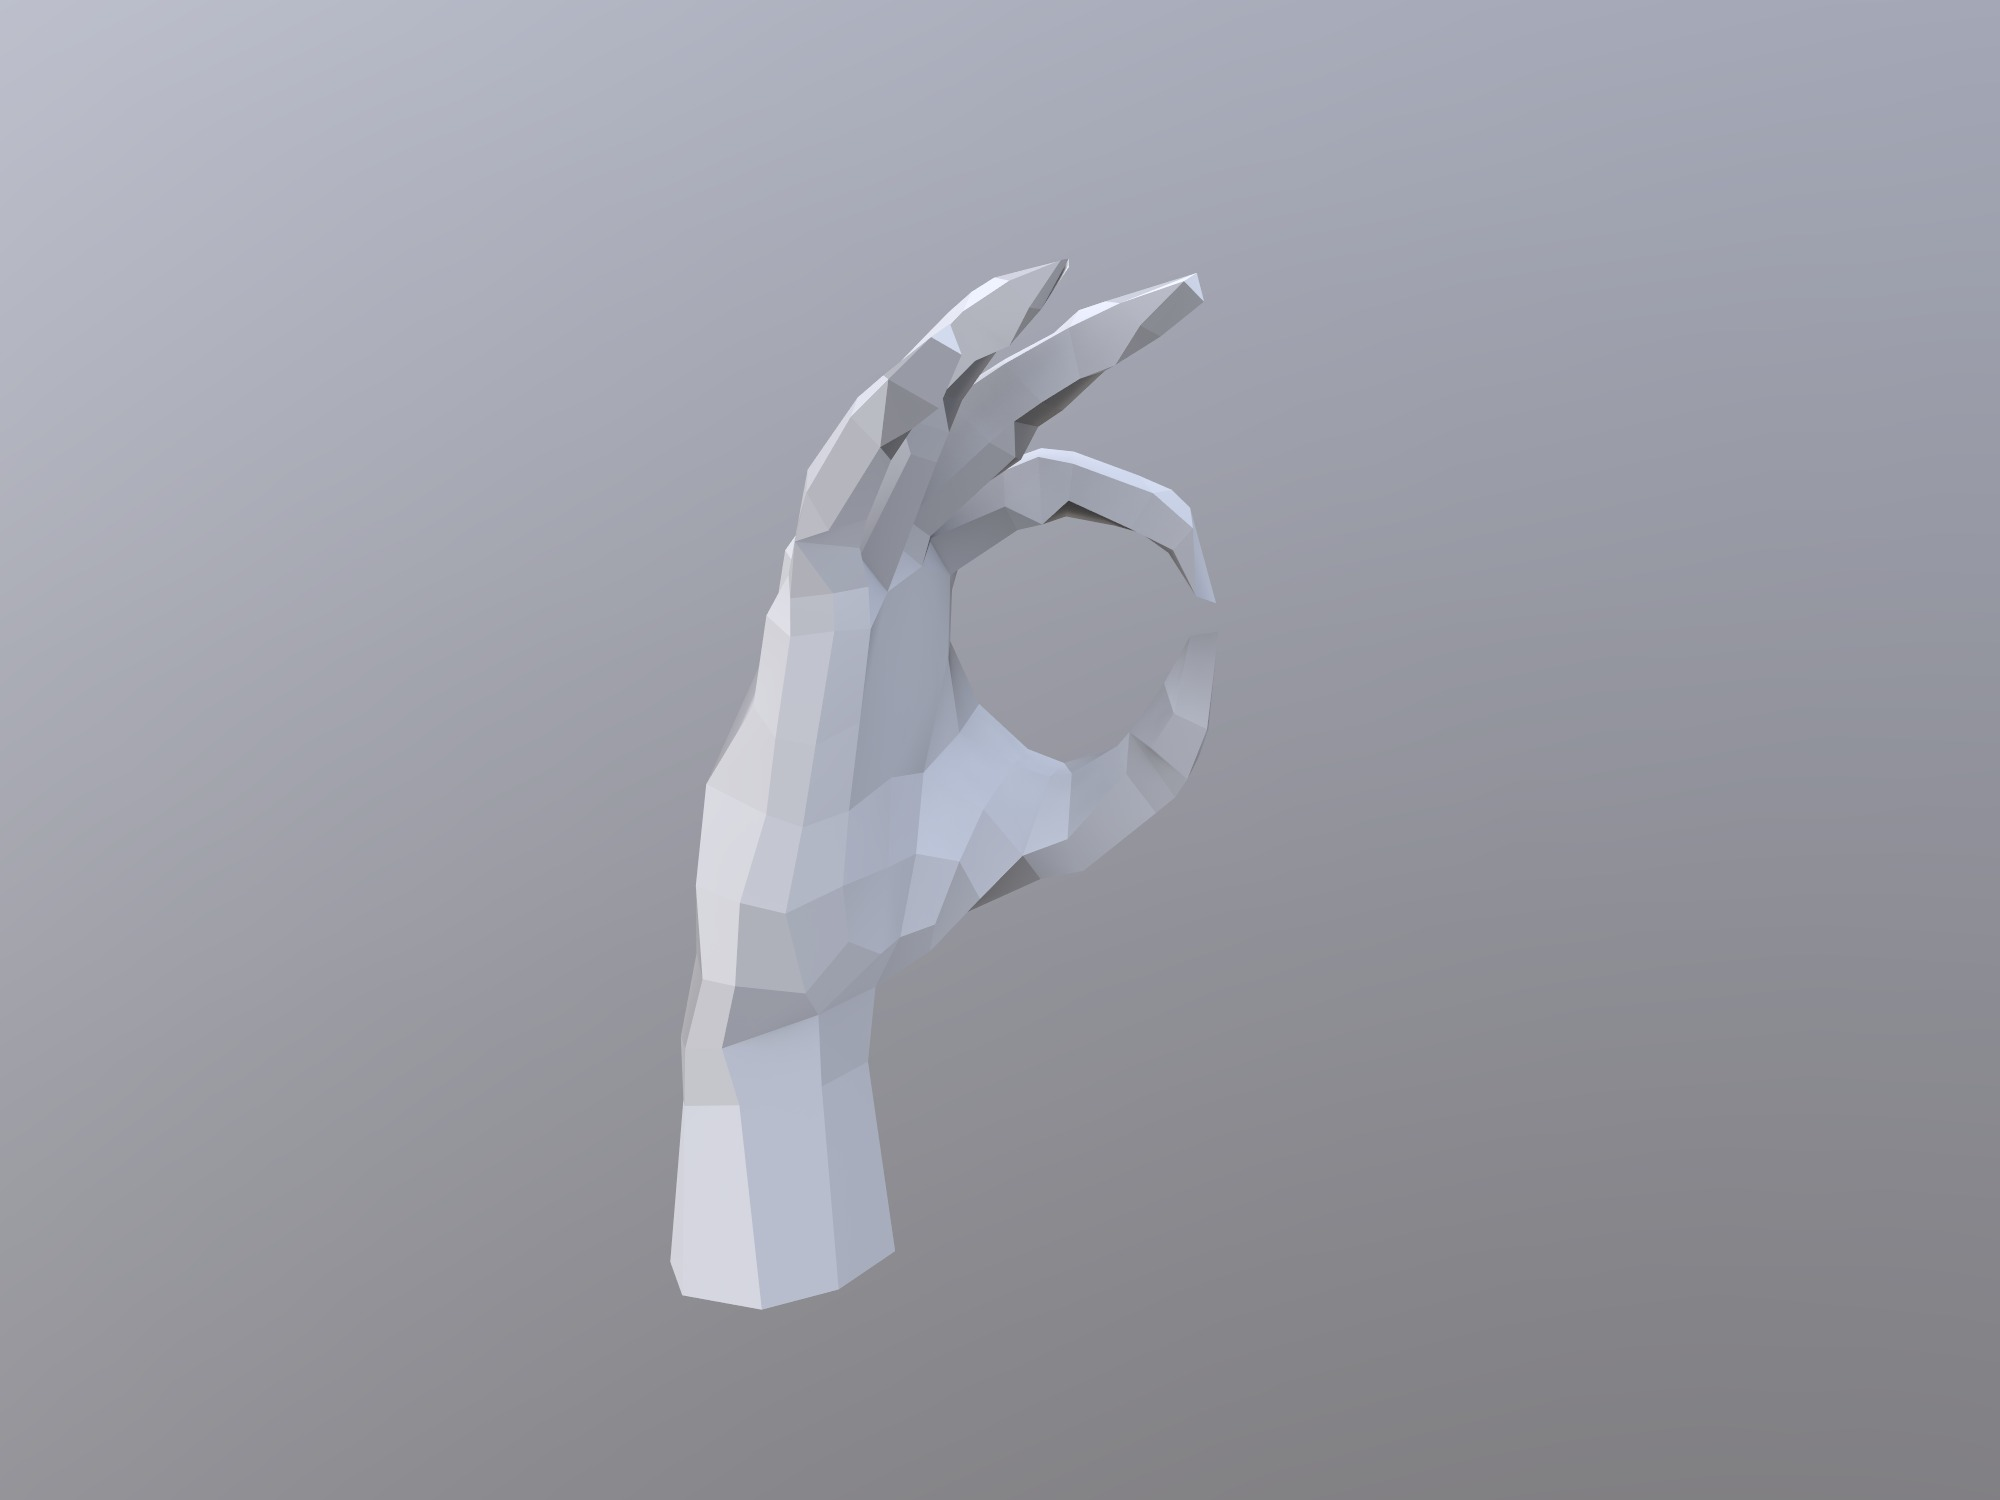 Handpicked Hand - 3D design by danny on Sep 18, 2018